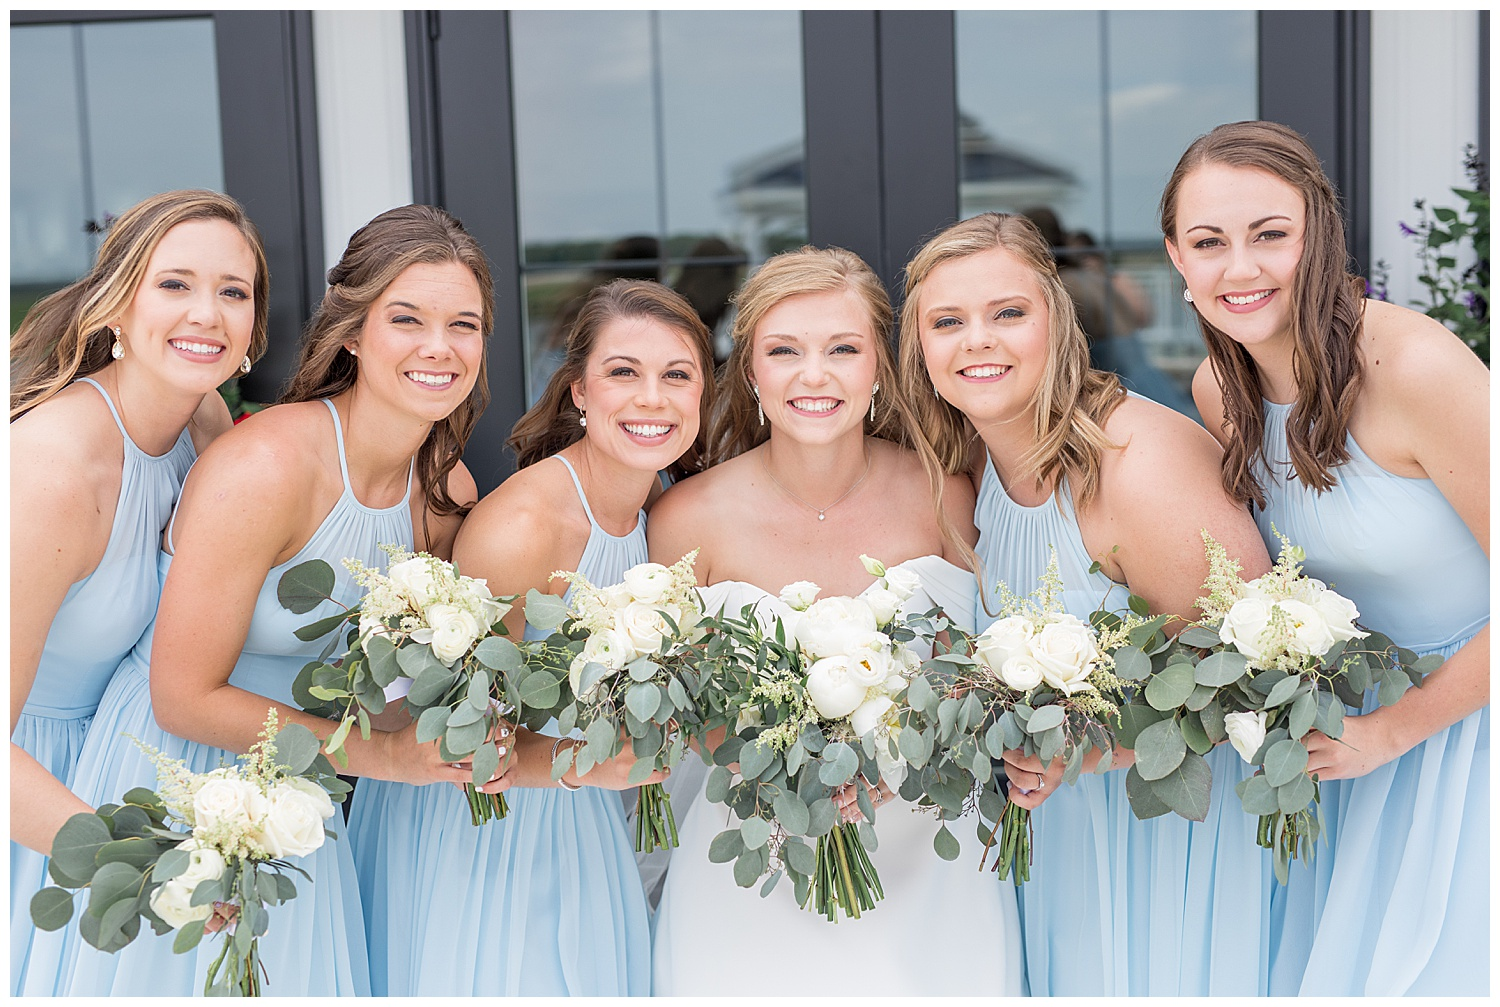 Lindsey Zitzke weddings